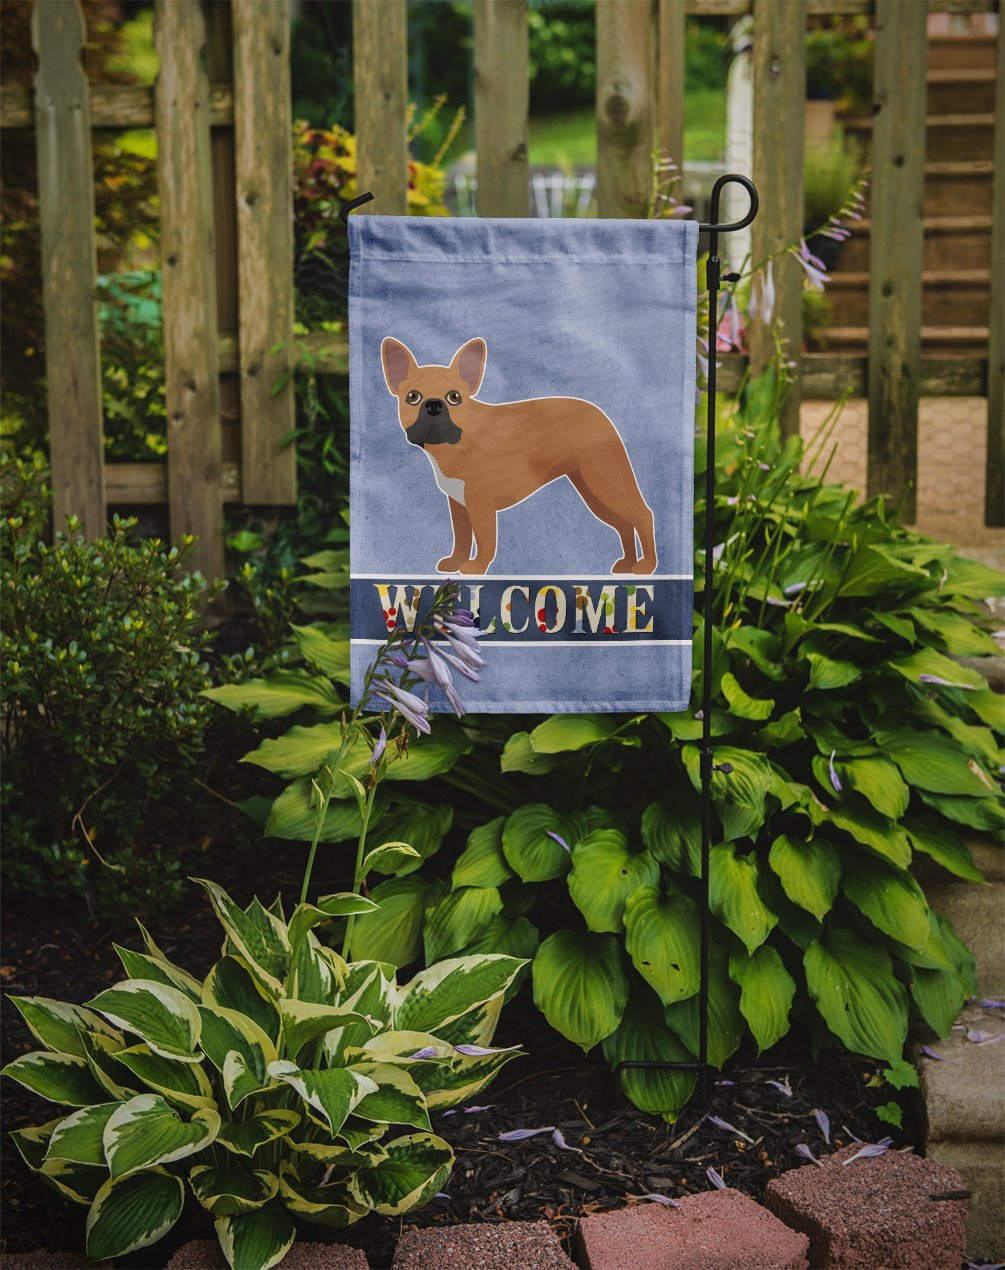 French Bulldog Welcome Flag Garden Size CK3647GF by Caroline's Treasures